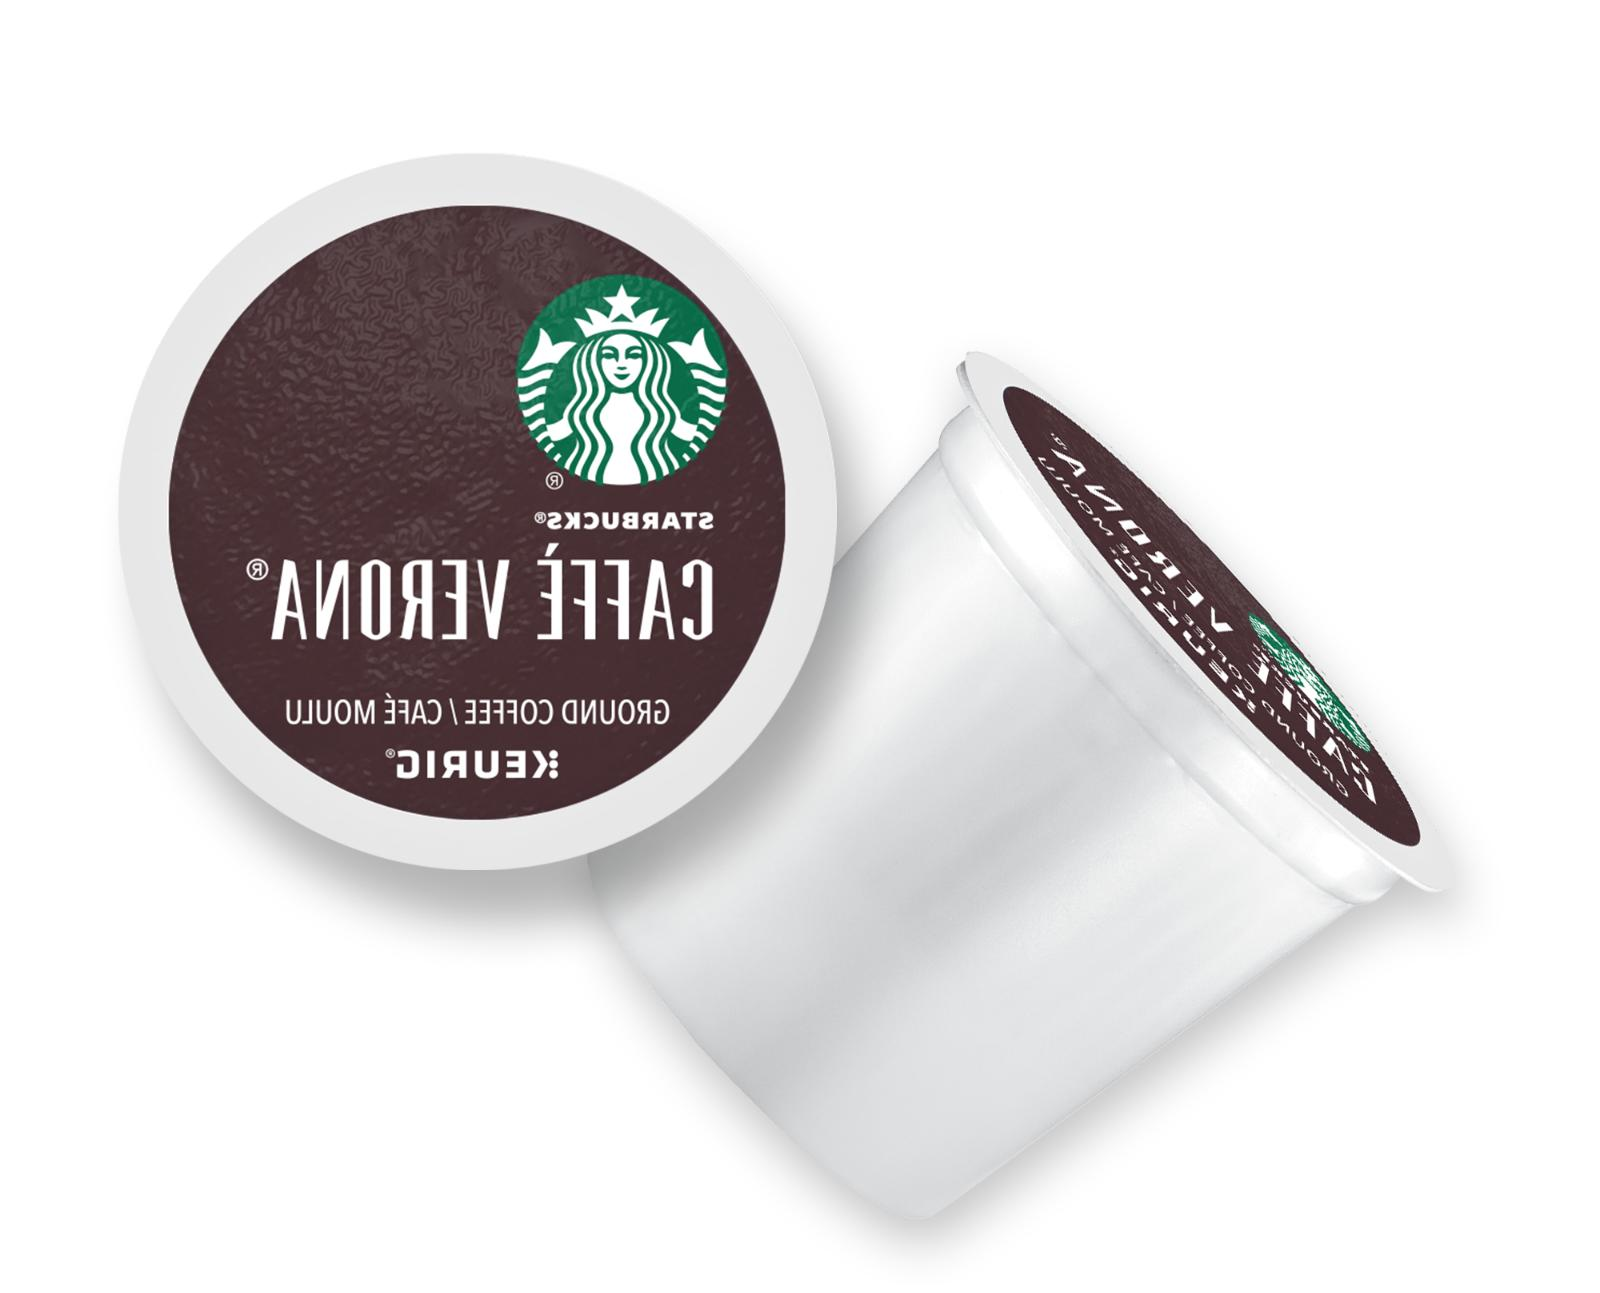 Starbucks Keurig K-Cups, 24 Count ANY FLAVOR